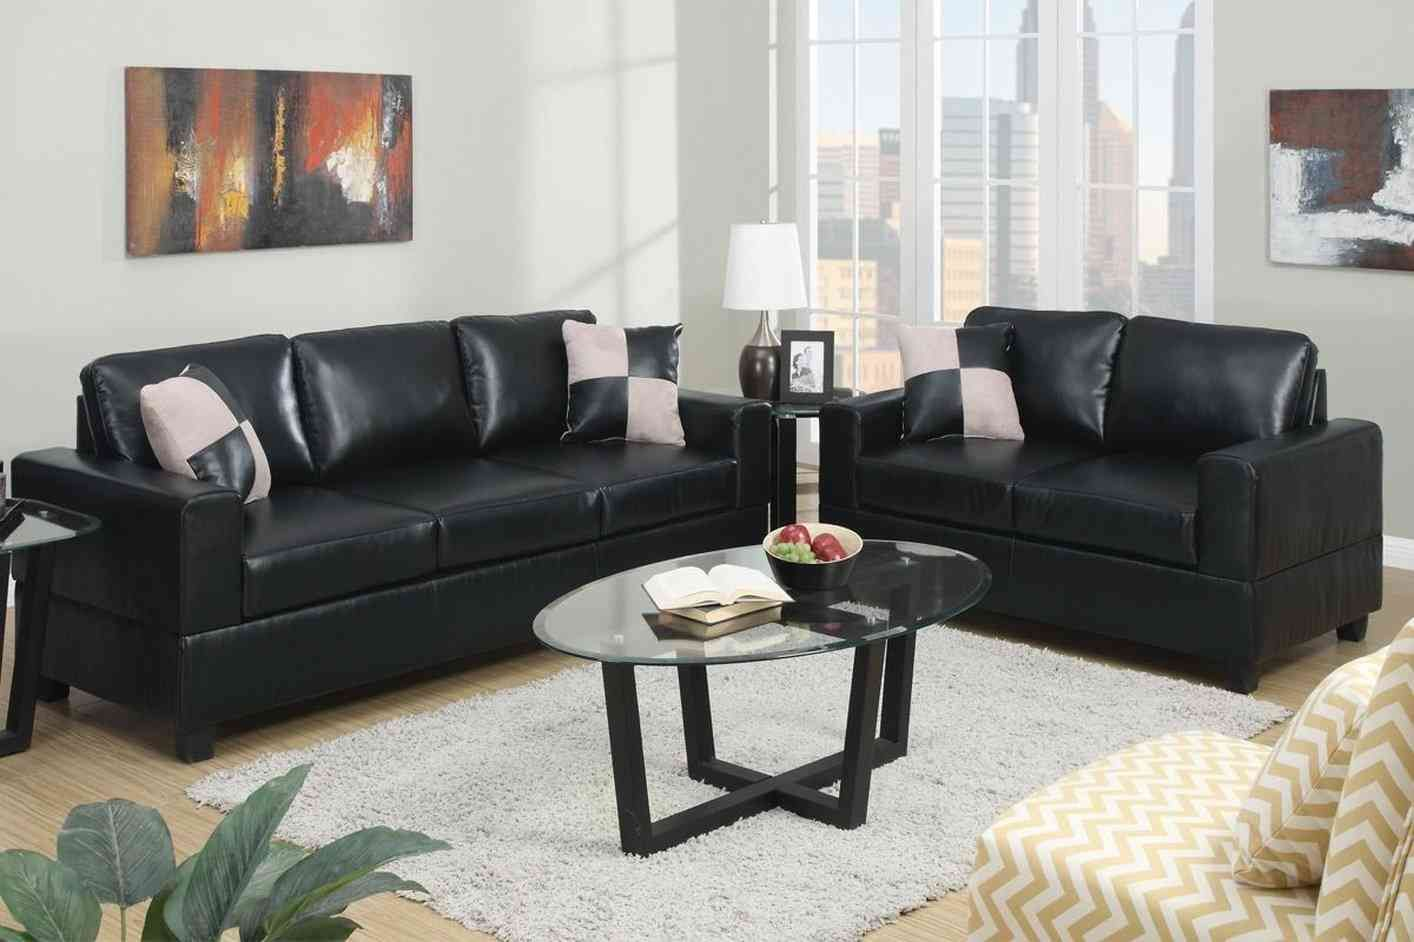 Wondrous Living Room Exciting Sofa Set For Sale Overstock Furniture Gmtry Best Dining Table And Chair Ideas Images Gmtryco